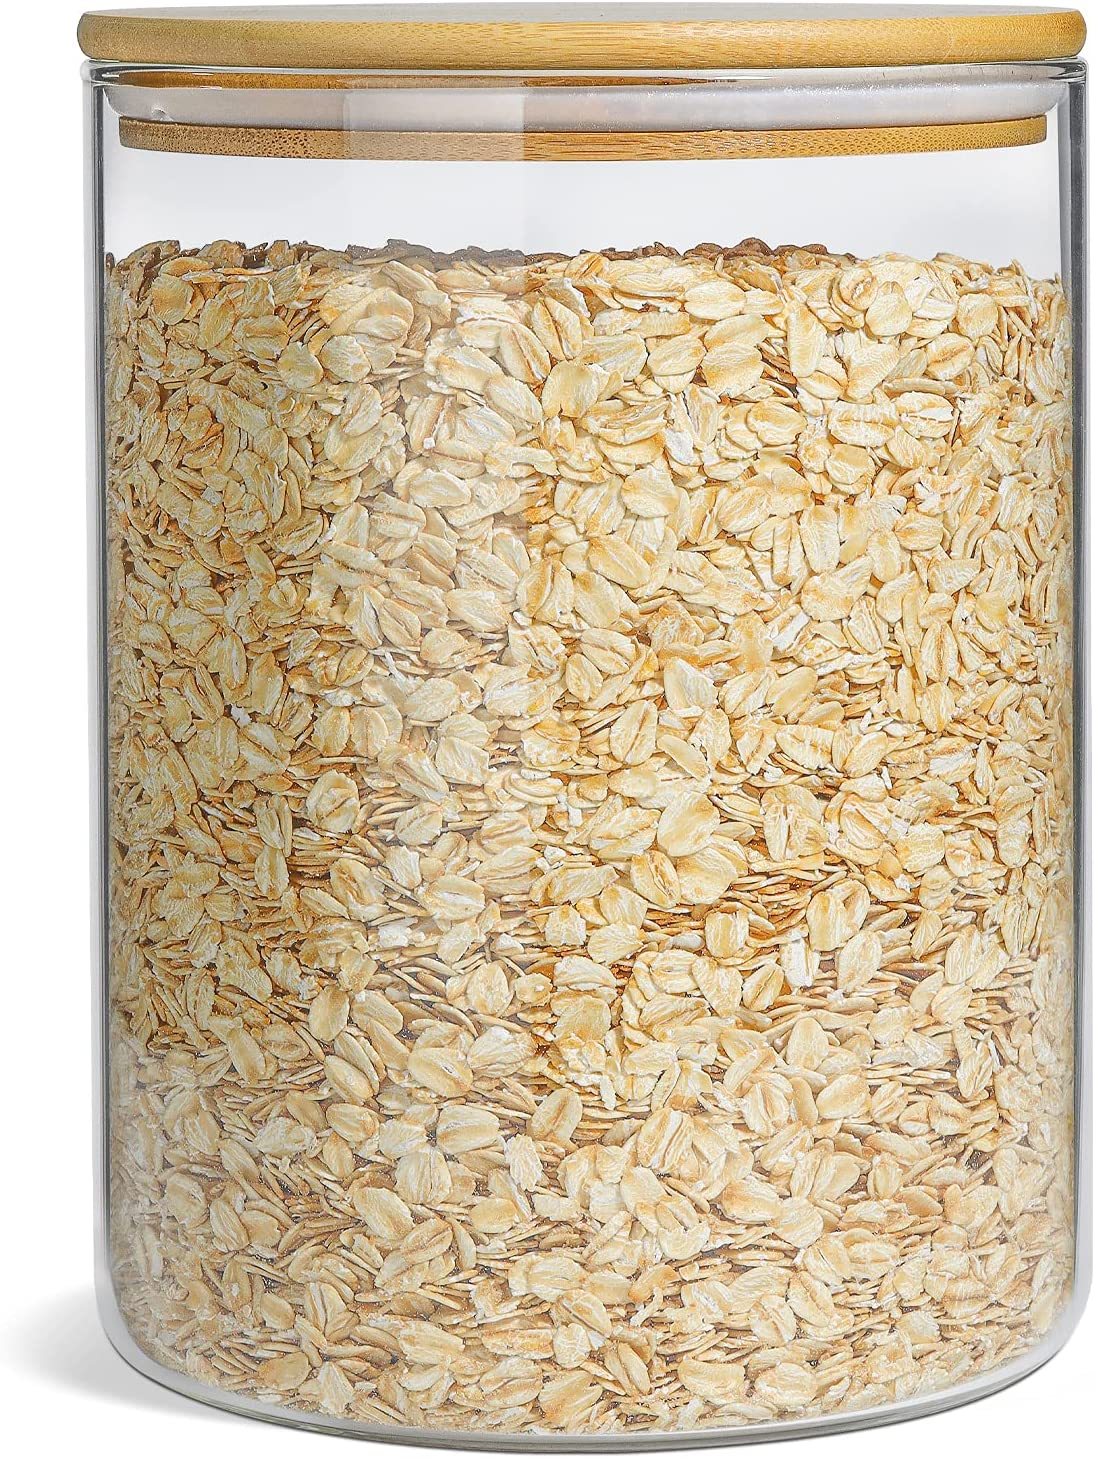 ComSaf Glass New Shipping Free Shipping Jar with Airtight Lid Liter 3 OZ Large trust 101FL Gla